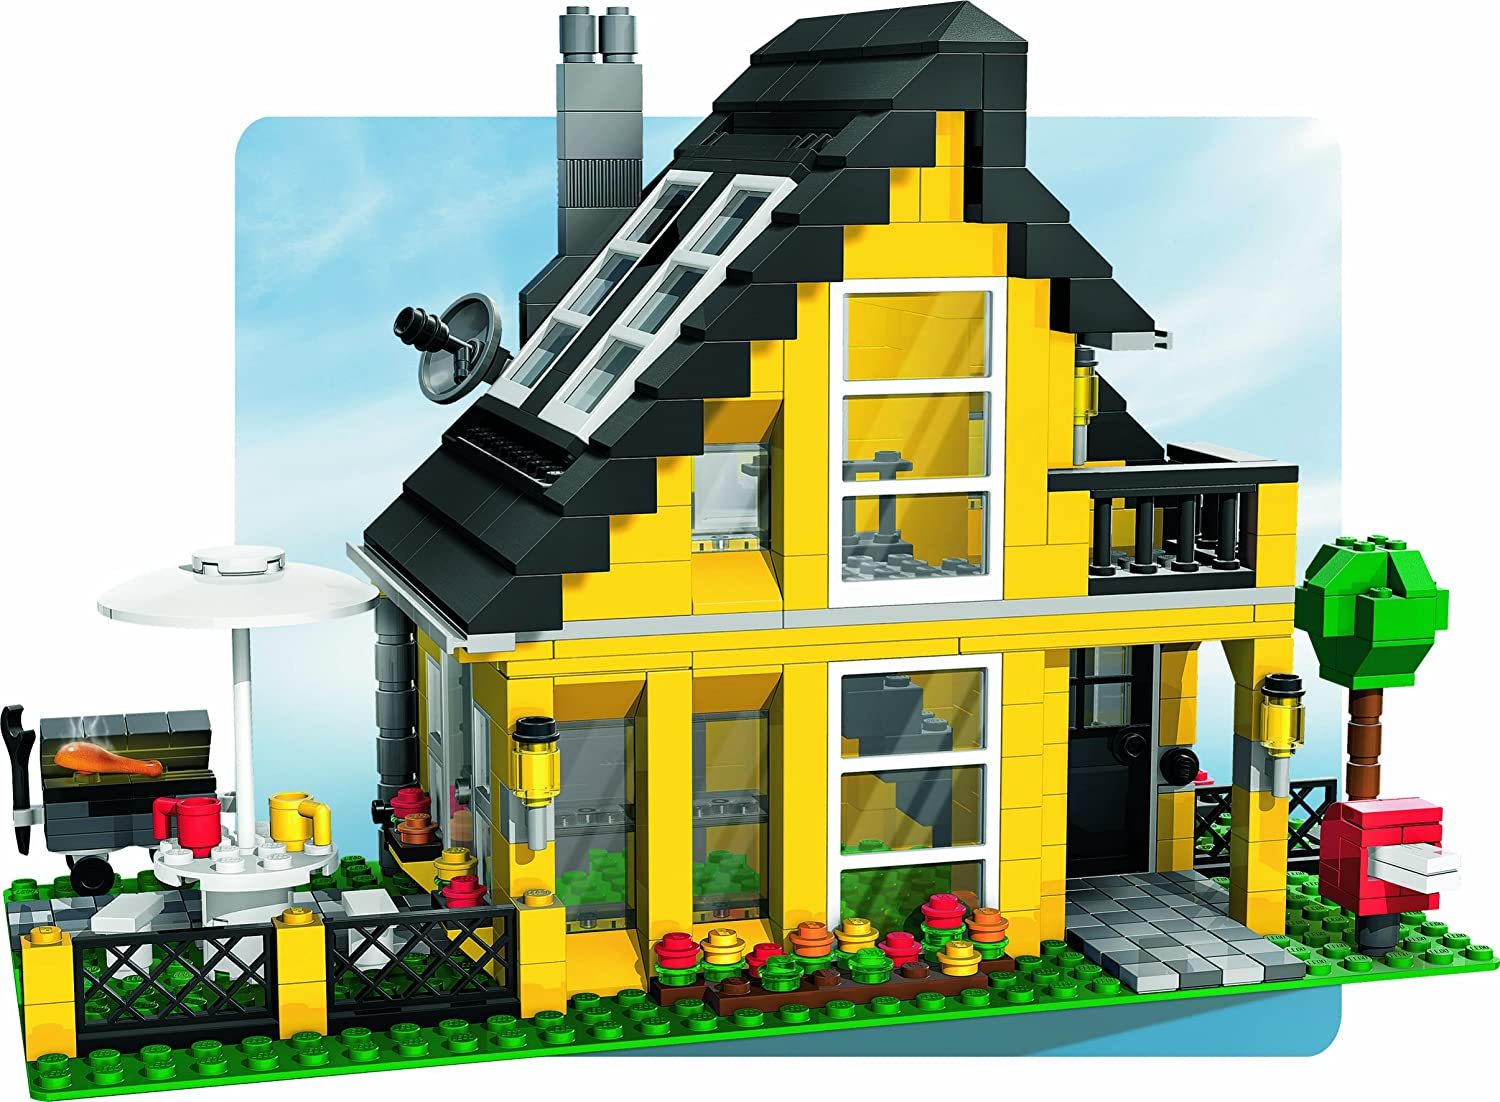 finest lego legoville jeux de la maison de vacances amazonfr jeux et jouets with jeux de maison. Black Bedroom Furniture Sets. Home Design Ideas